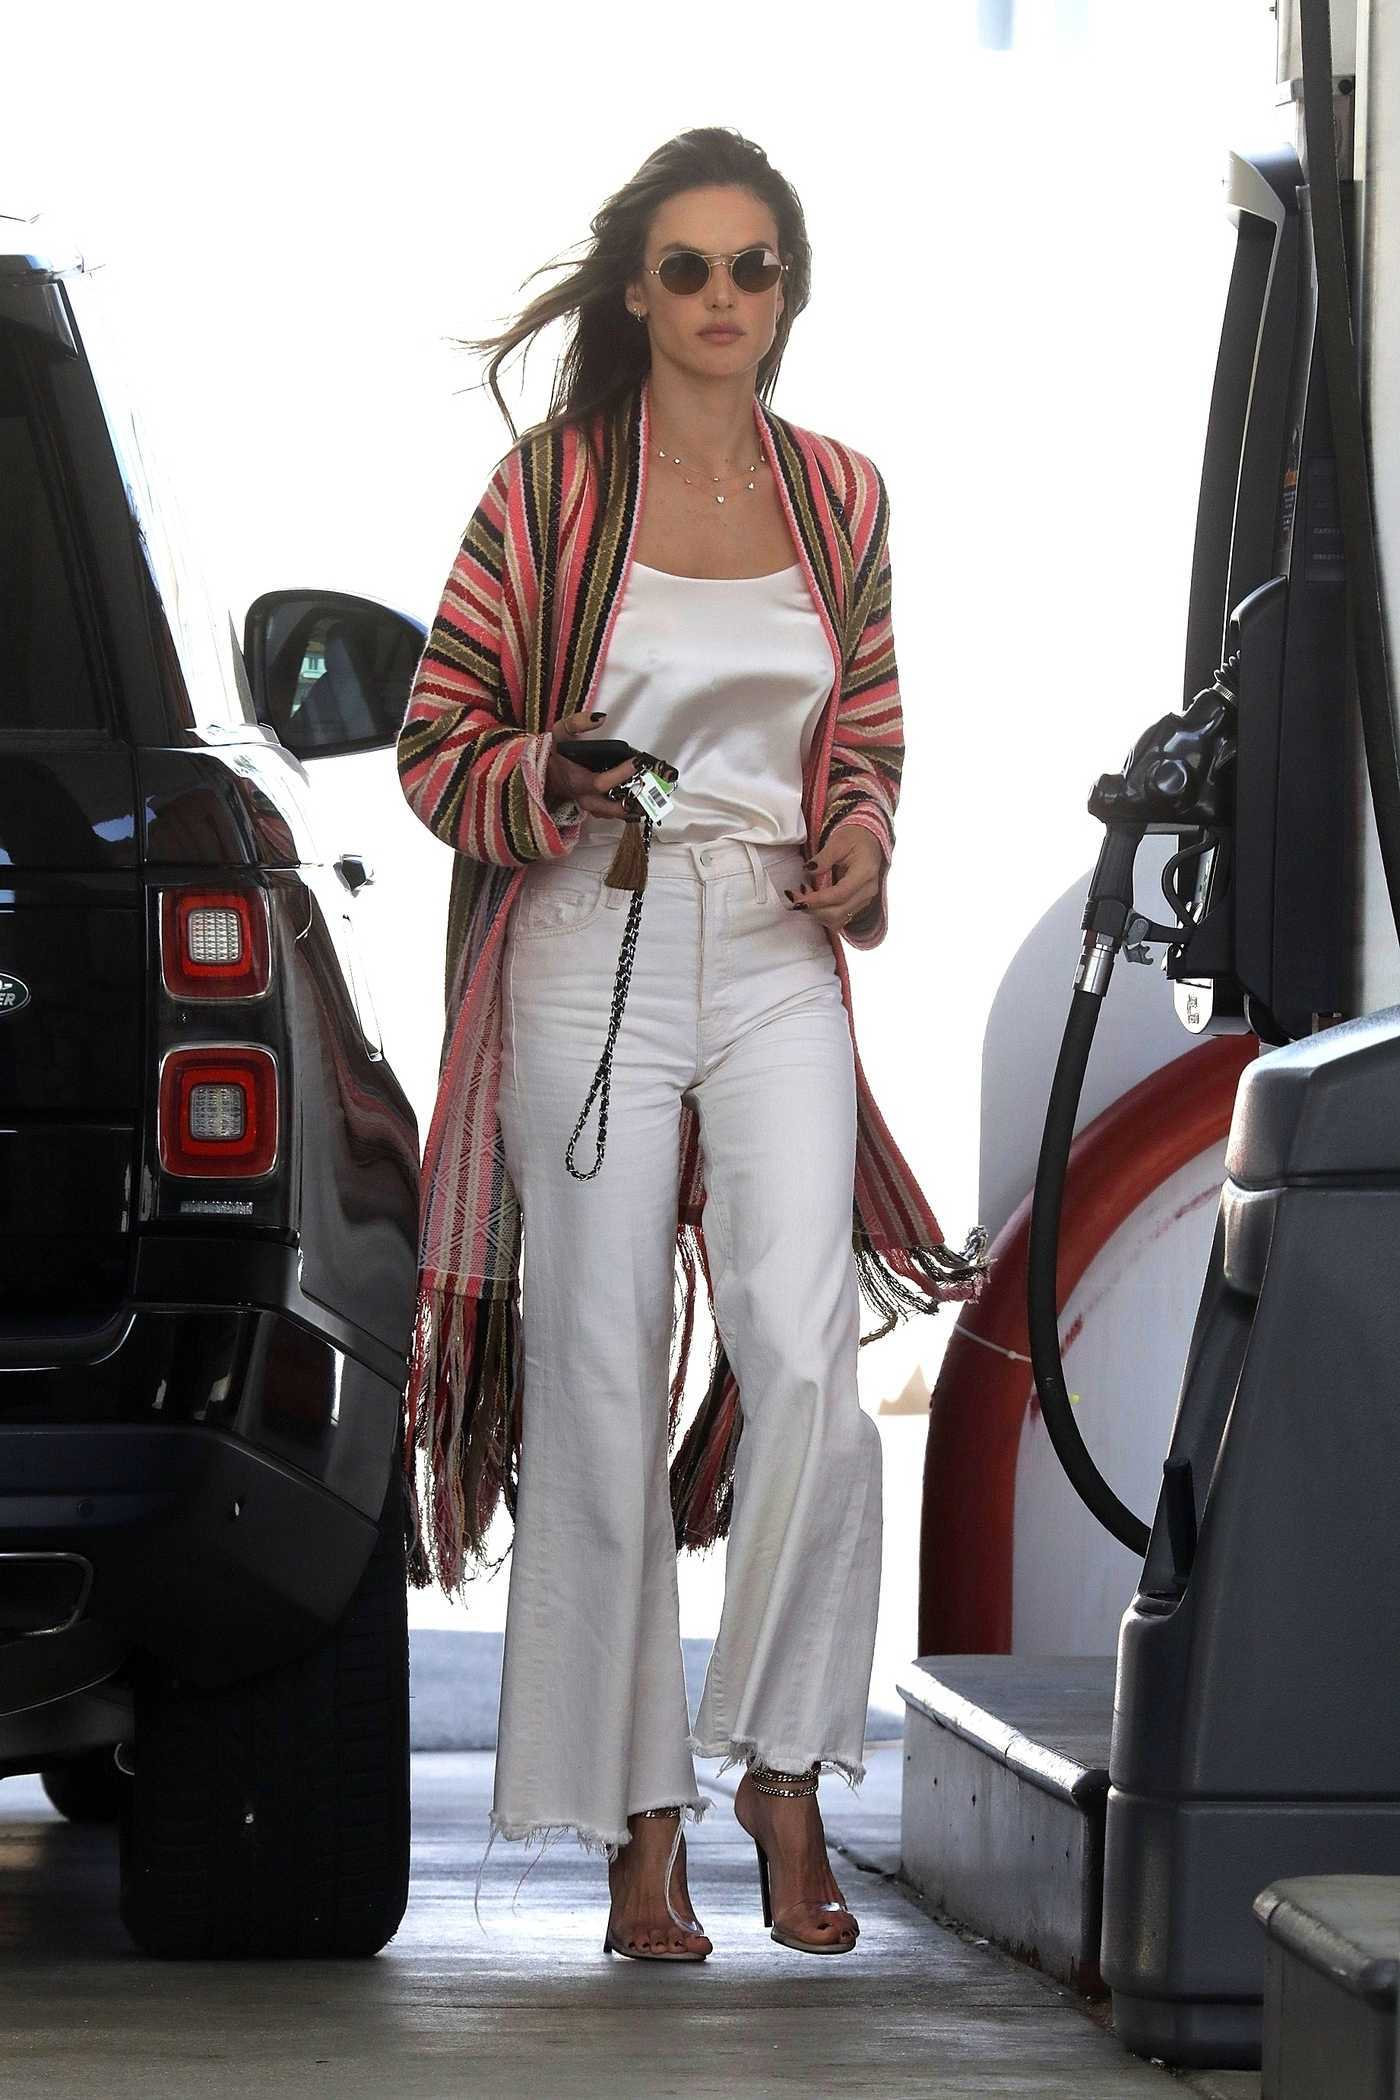 Alessandra Ambrosio in a White Pants Attends the Gas Station in Malibu 03/21/2019